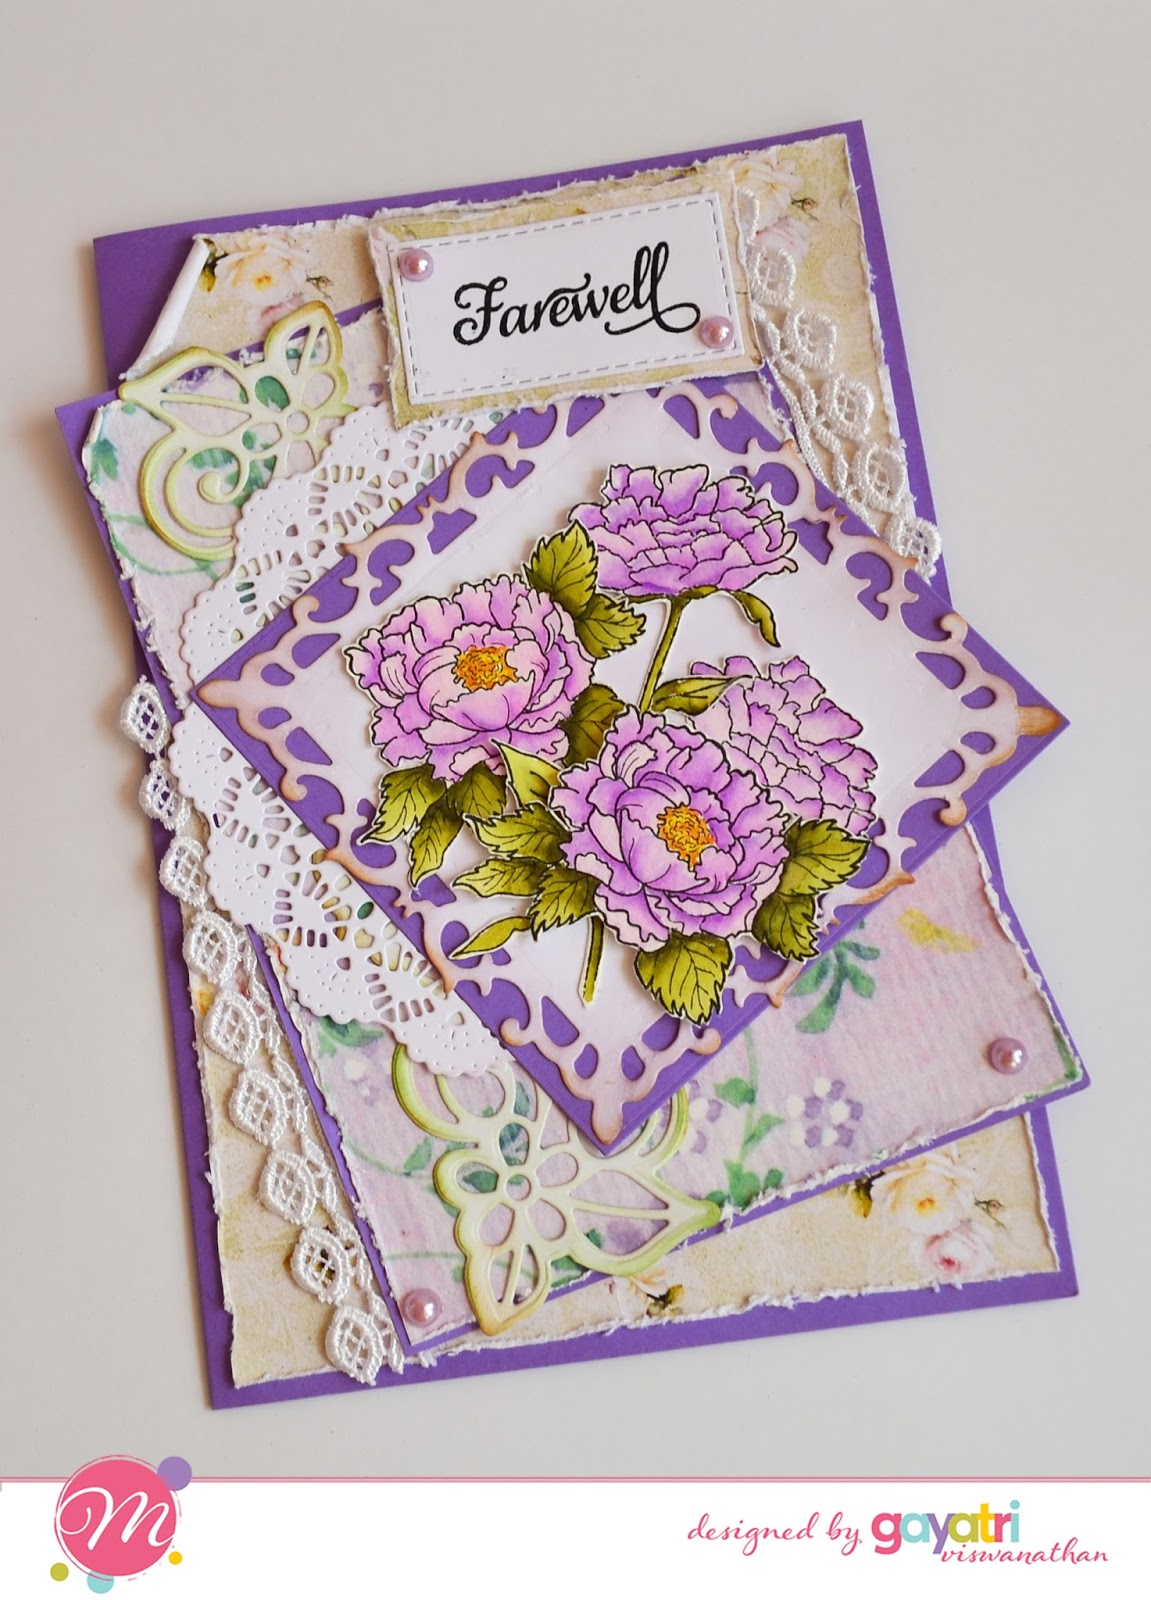 Farewell card using Mudra Craft Stamps [Guest Post by Gayatri] 3